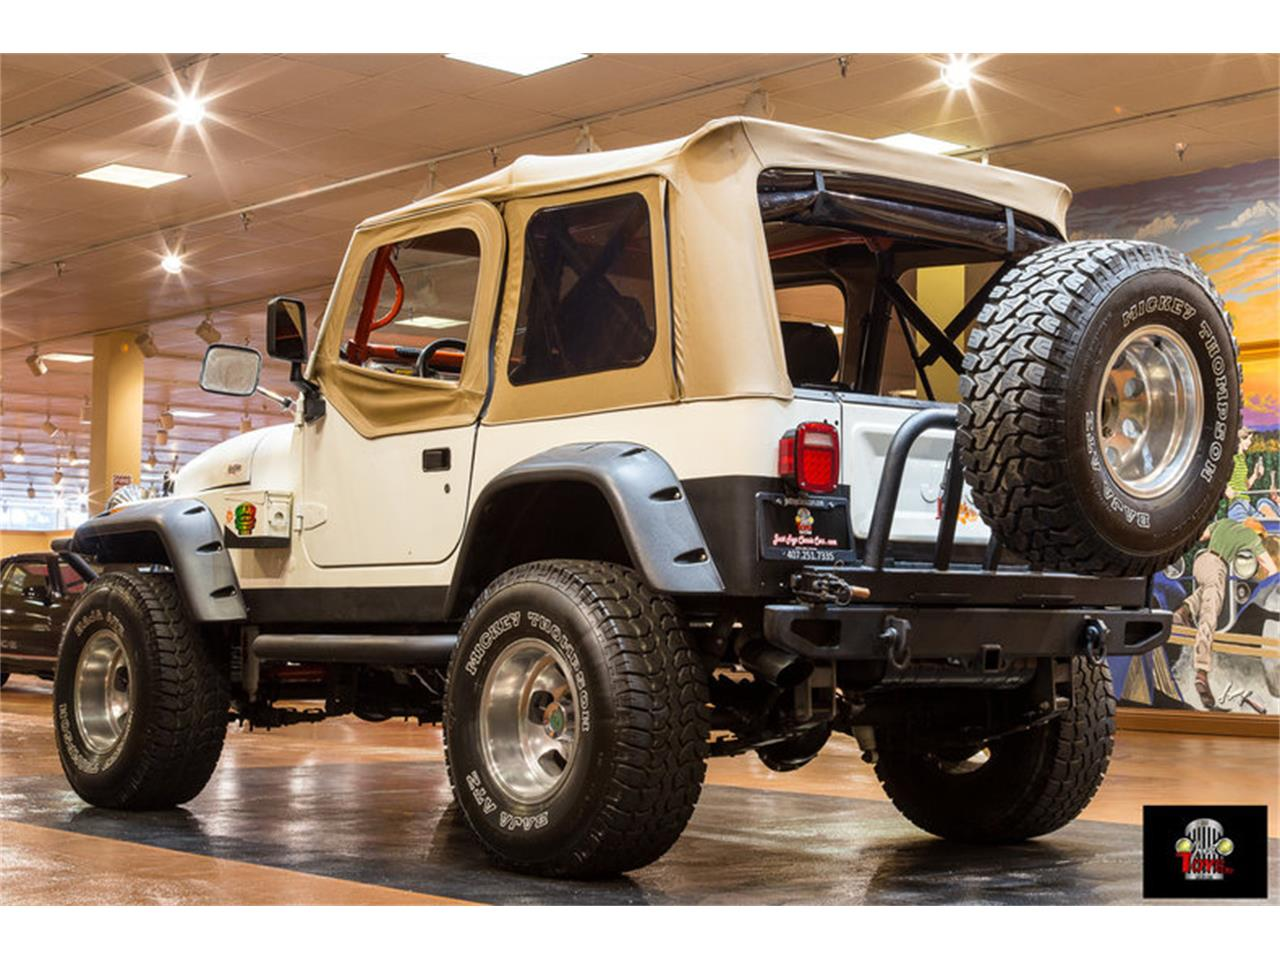 Large Picture of '83 Jeep Wrangler located in Orlando Florida - $11,995.00 - LHC9